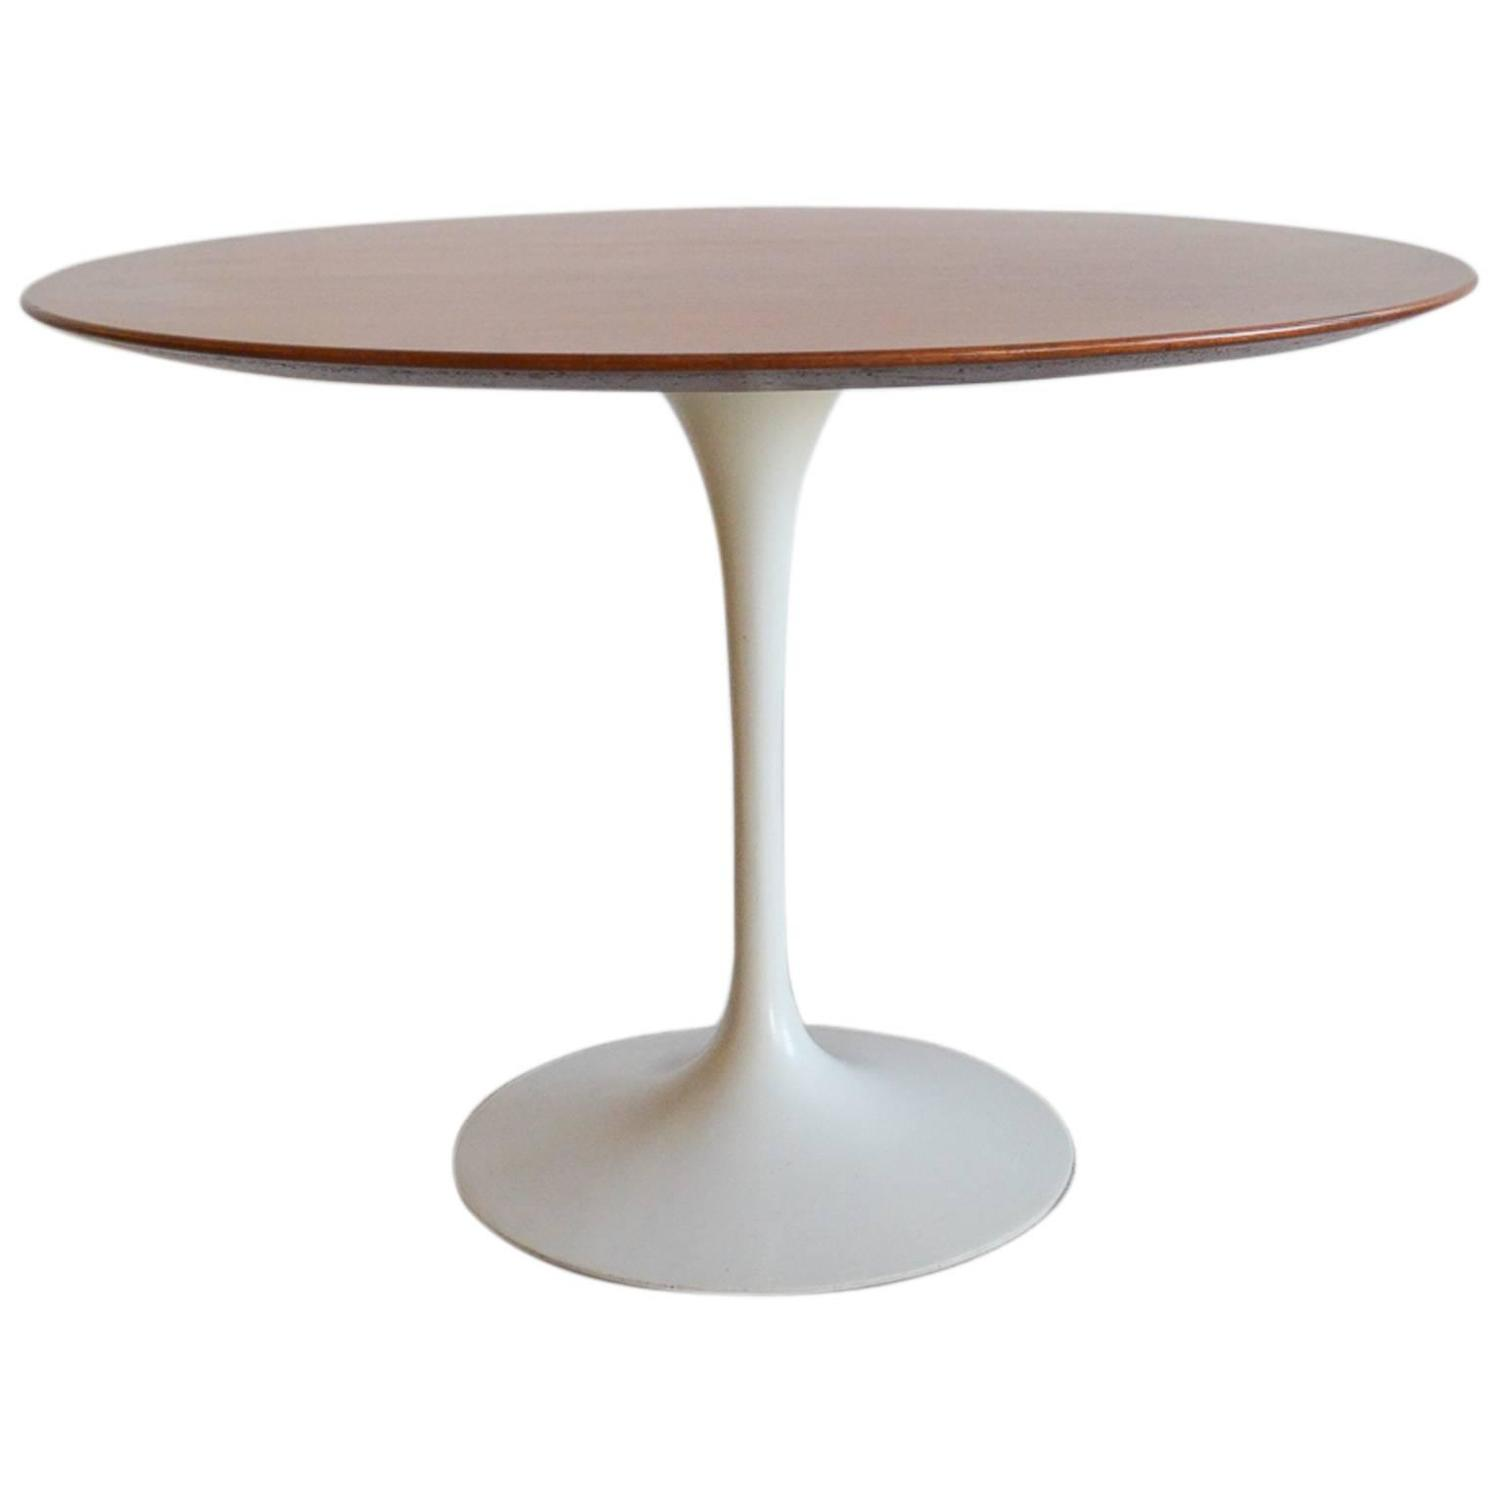 Knoll Saarinen Eero Saarinen For Knoll Walnut Dining Table At 1stdibs